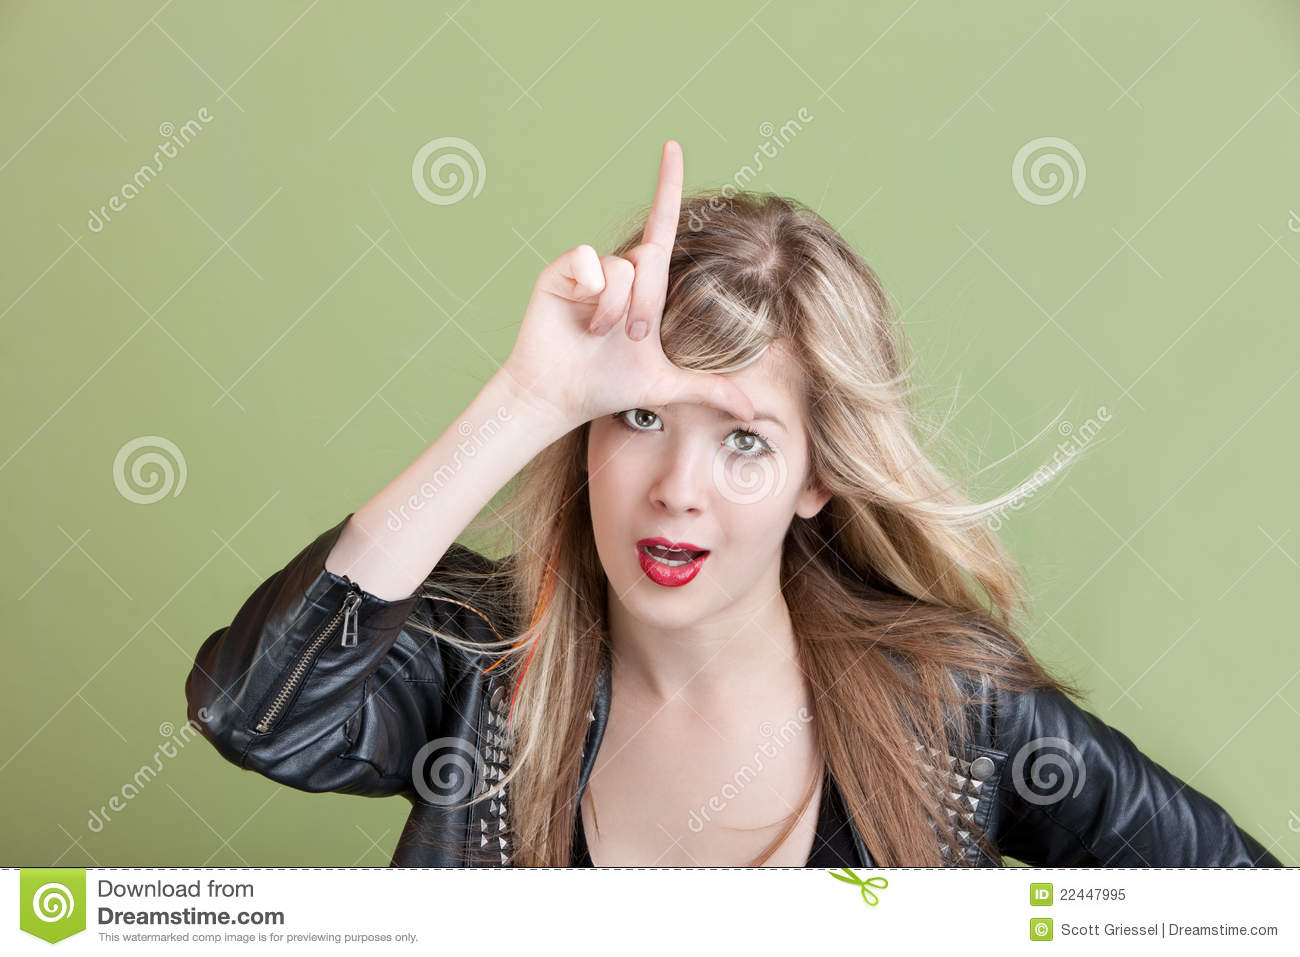 Loser Symbol Royalty Free Stock Photo   Image  22447995